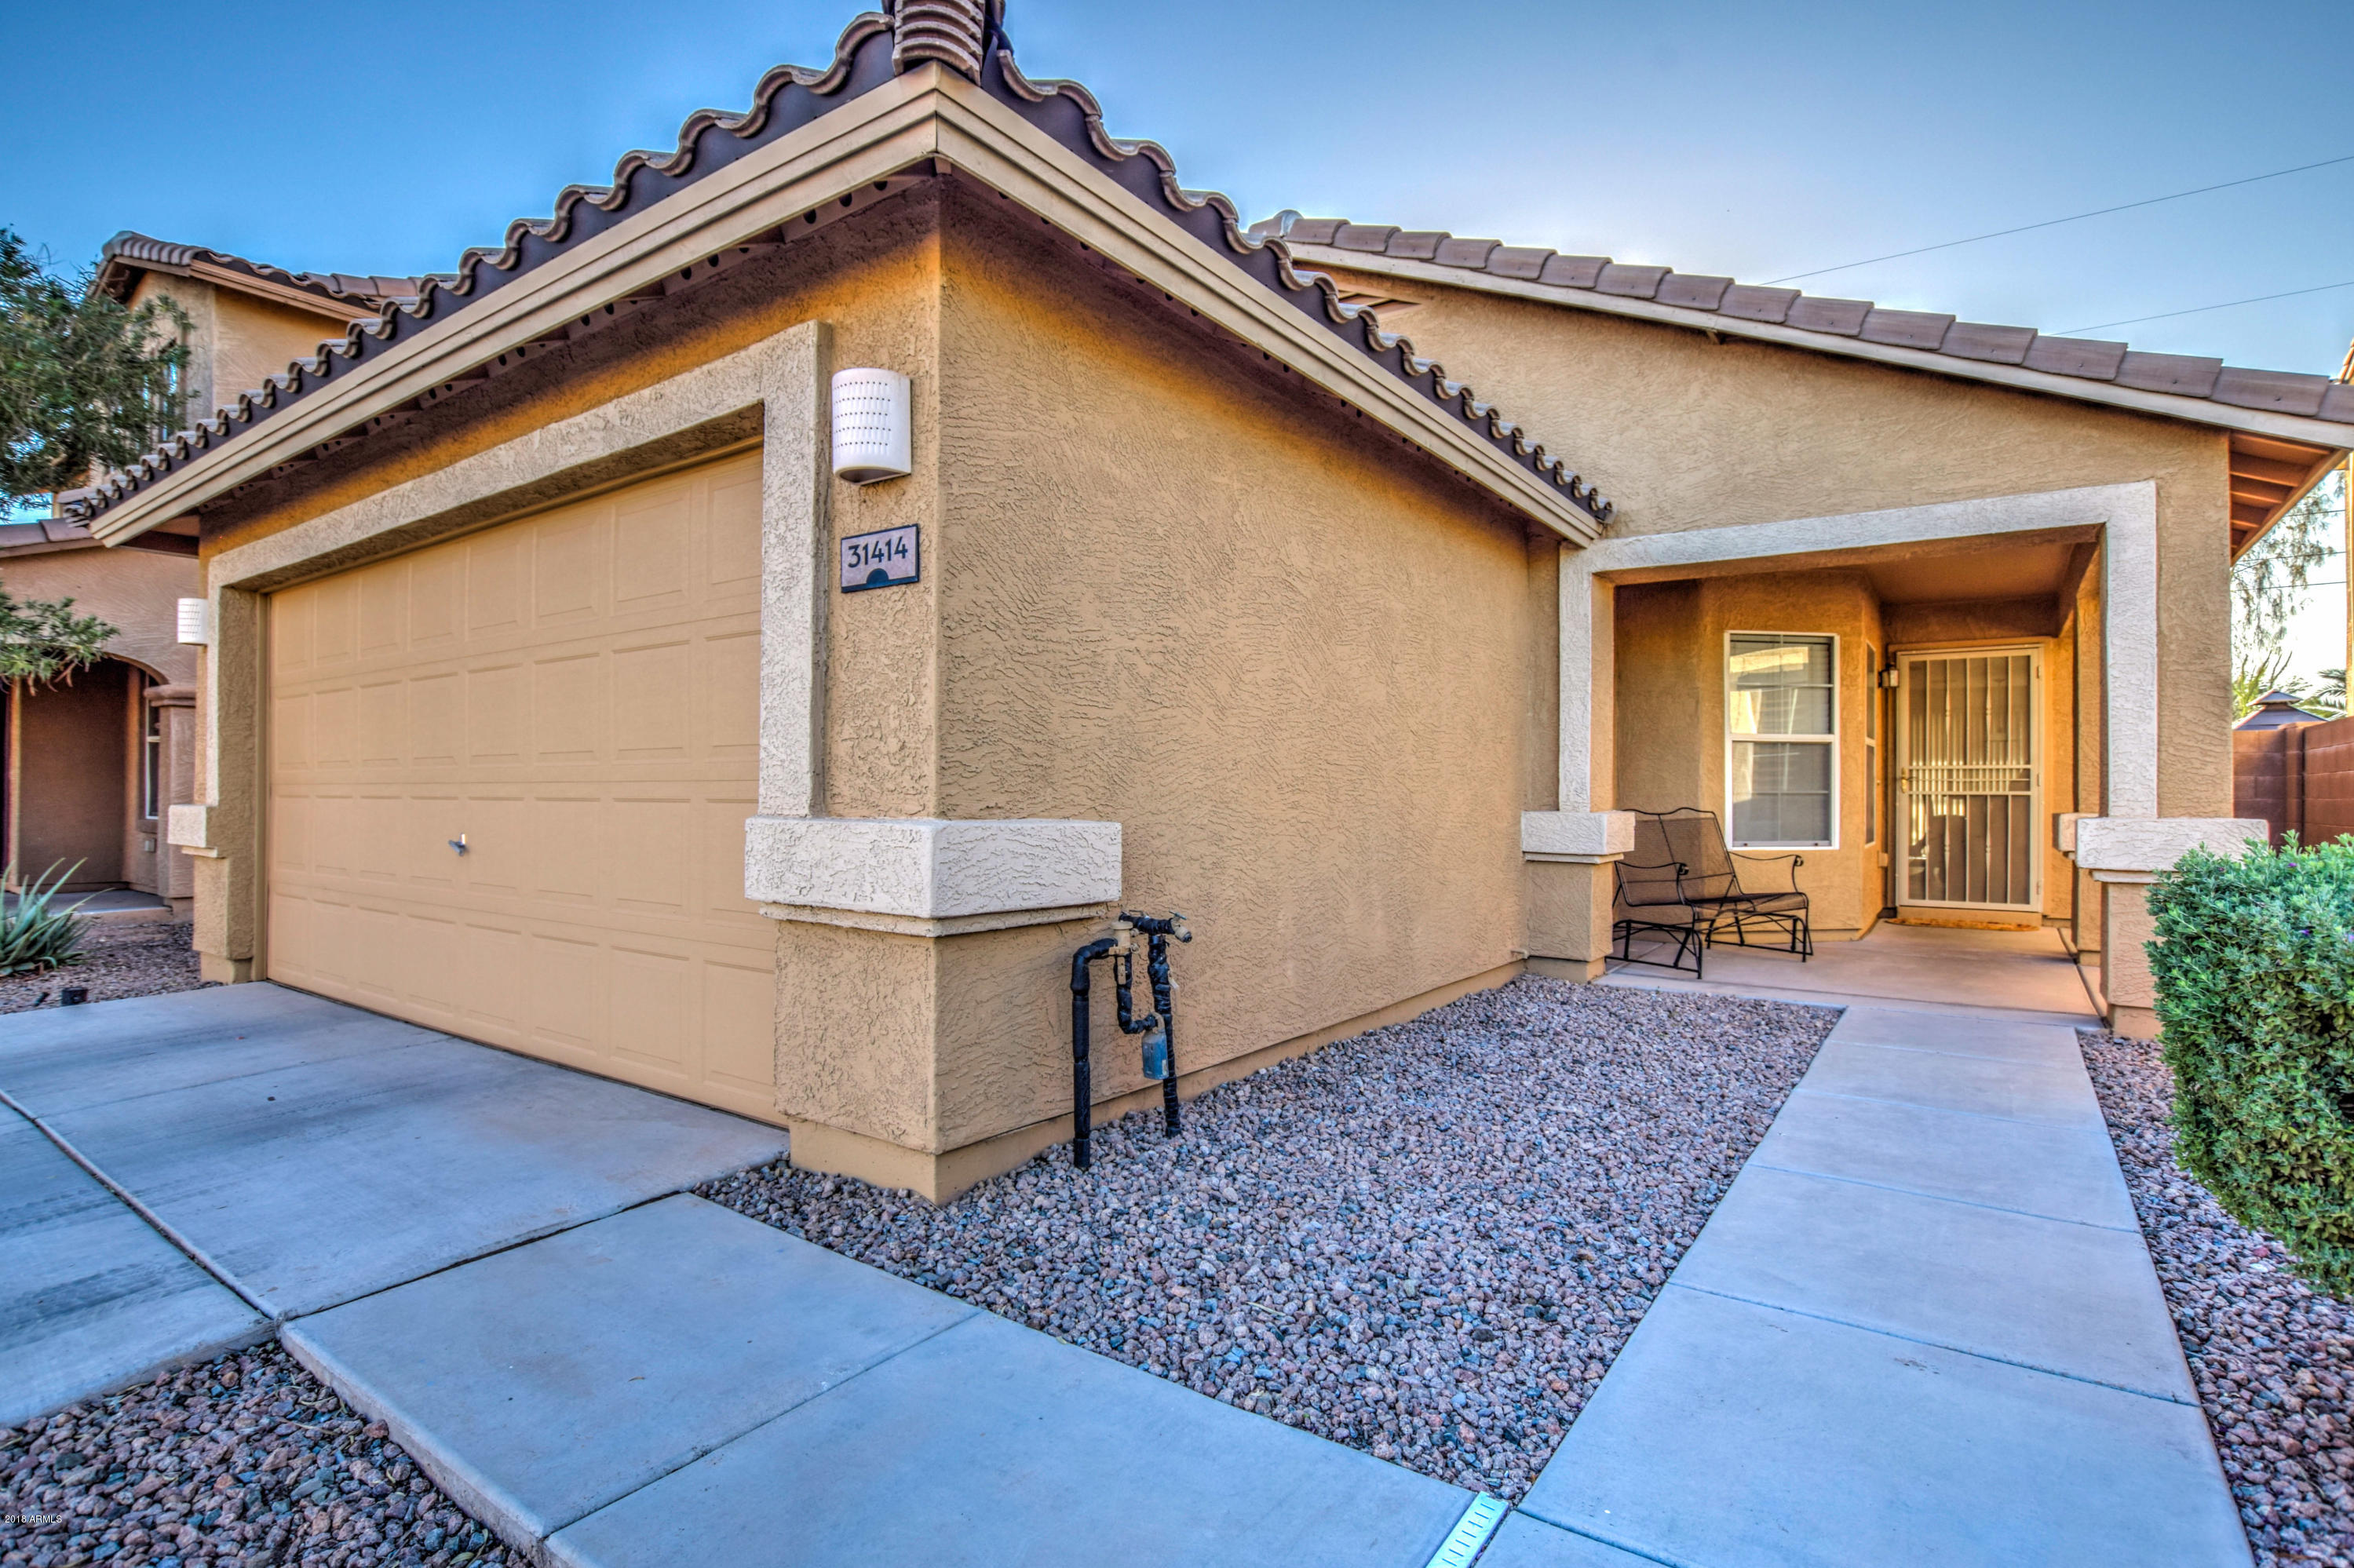 Photo of 31414 N CHEYENNE Drive, San Tan Valley, AZ 85143